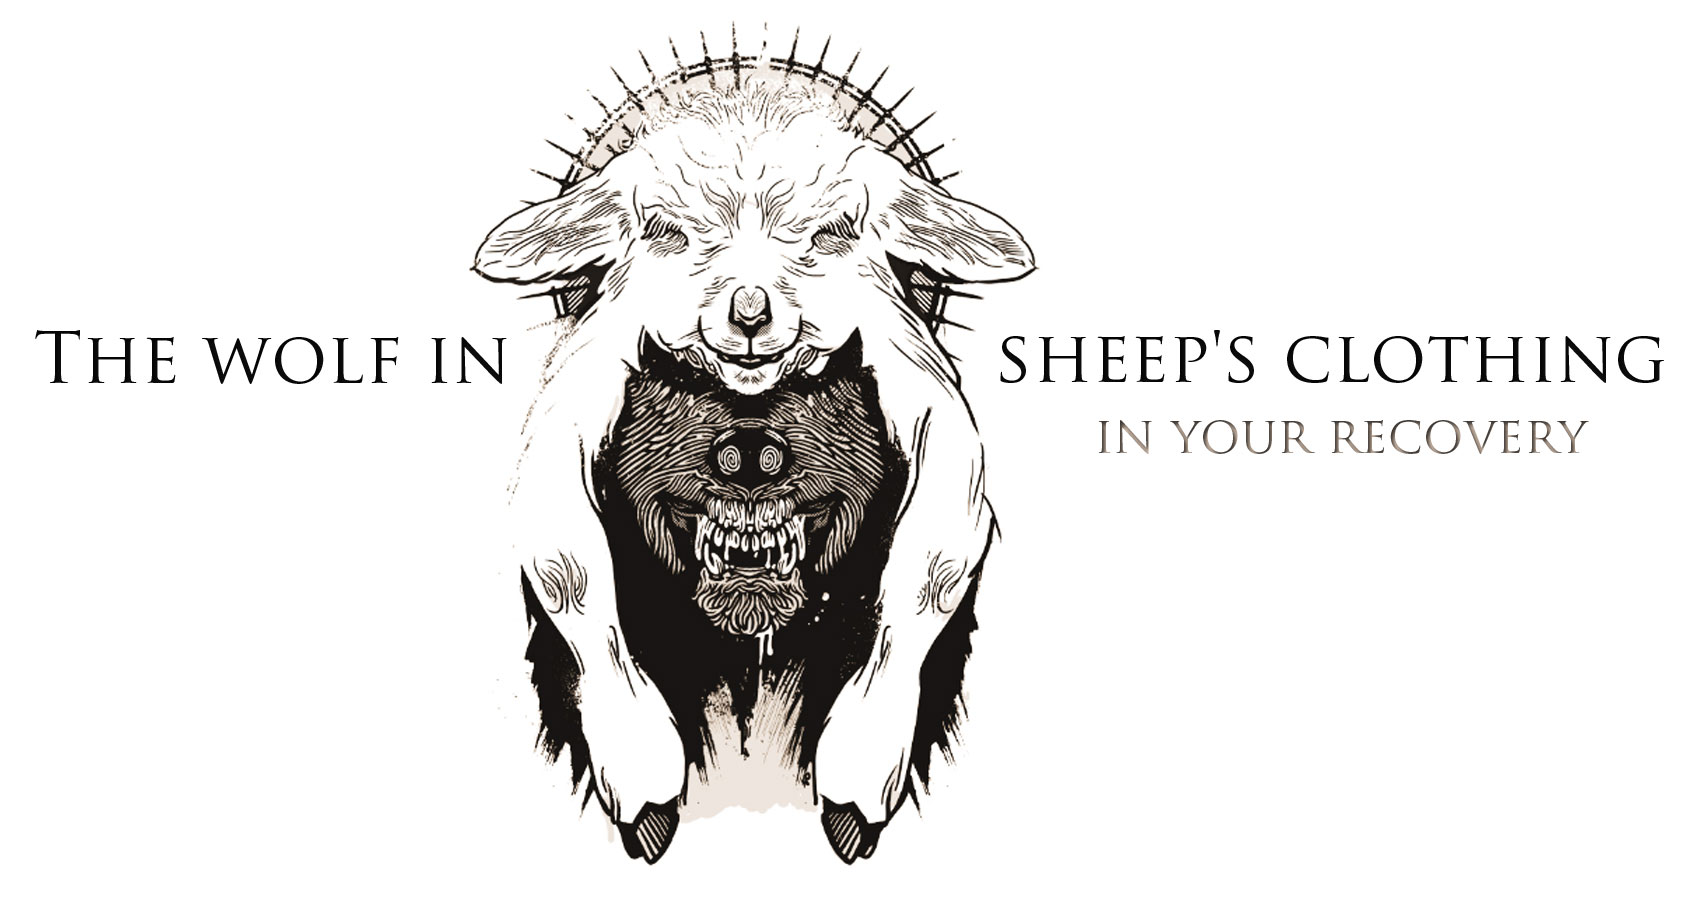 The wolf in sheep's clothing, in your recovery written by Matthew Pappas at Spillwords.com